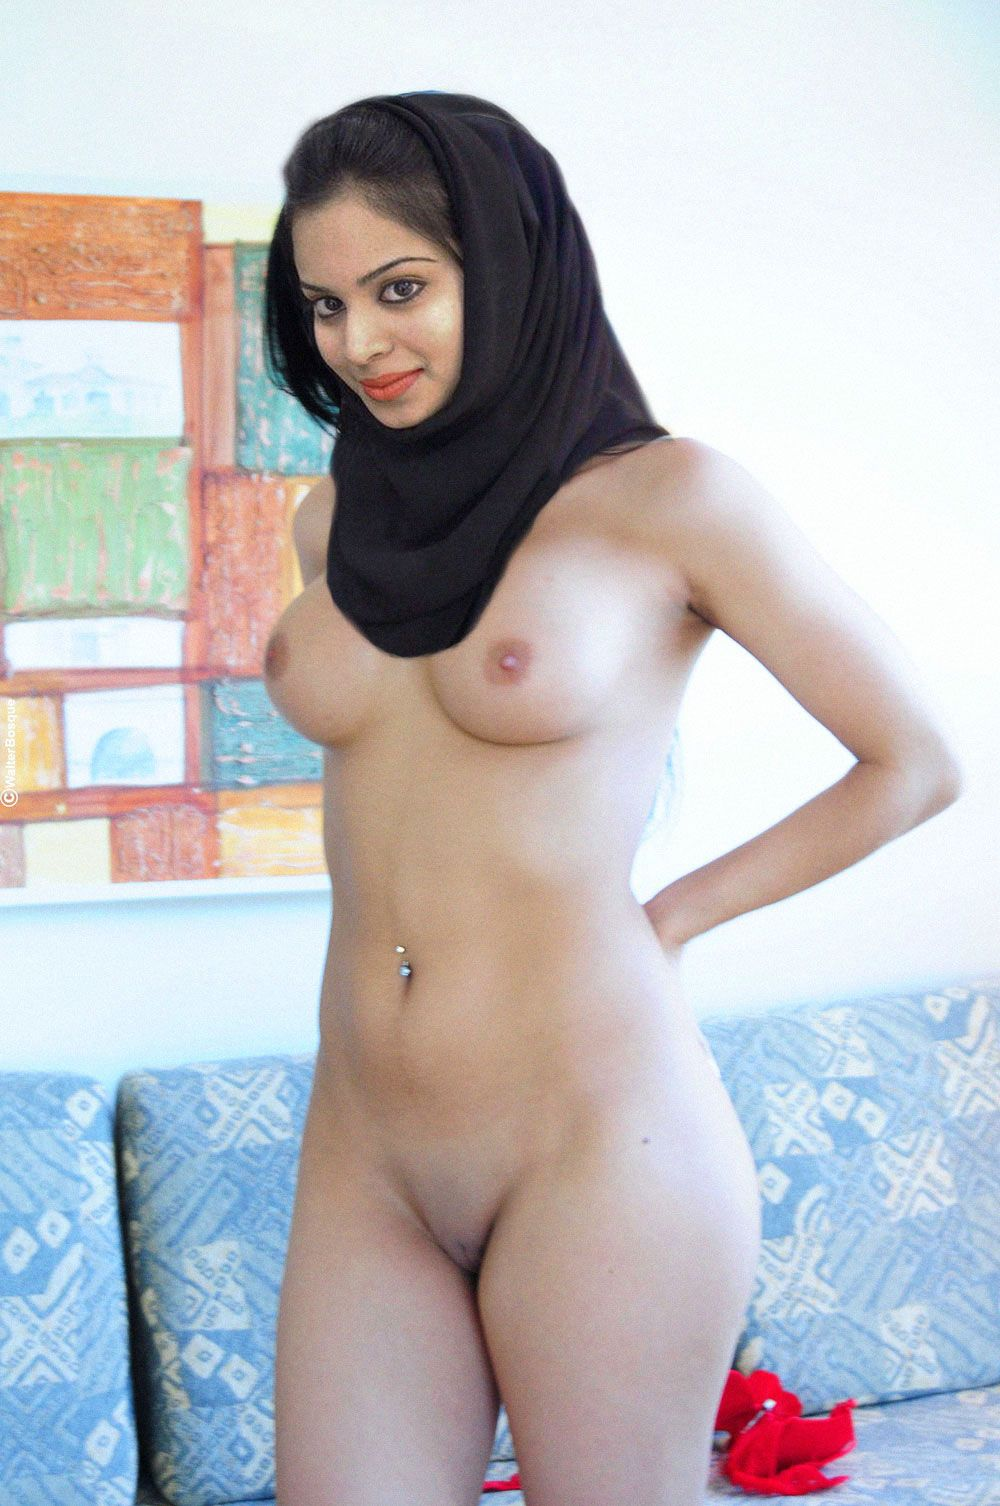 Arab naked pics, porno de vanessa williams